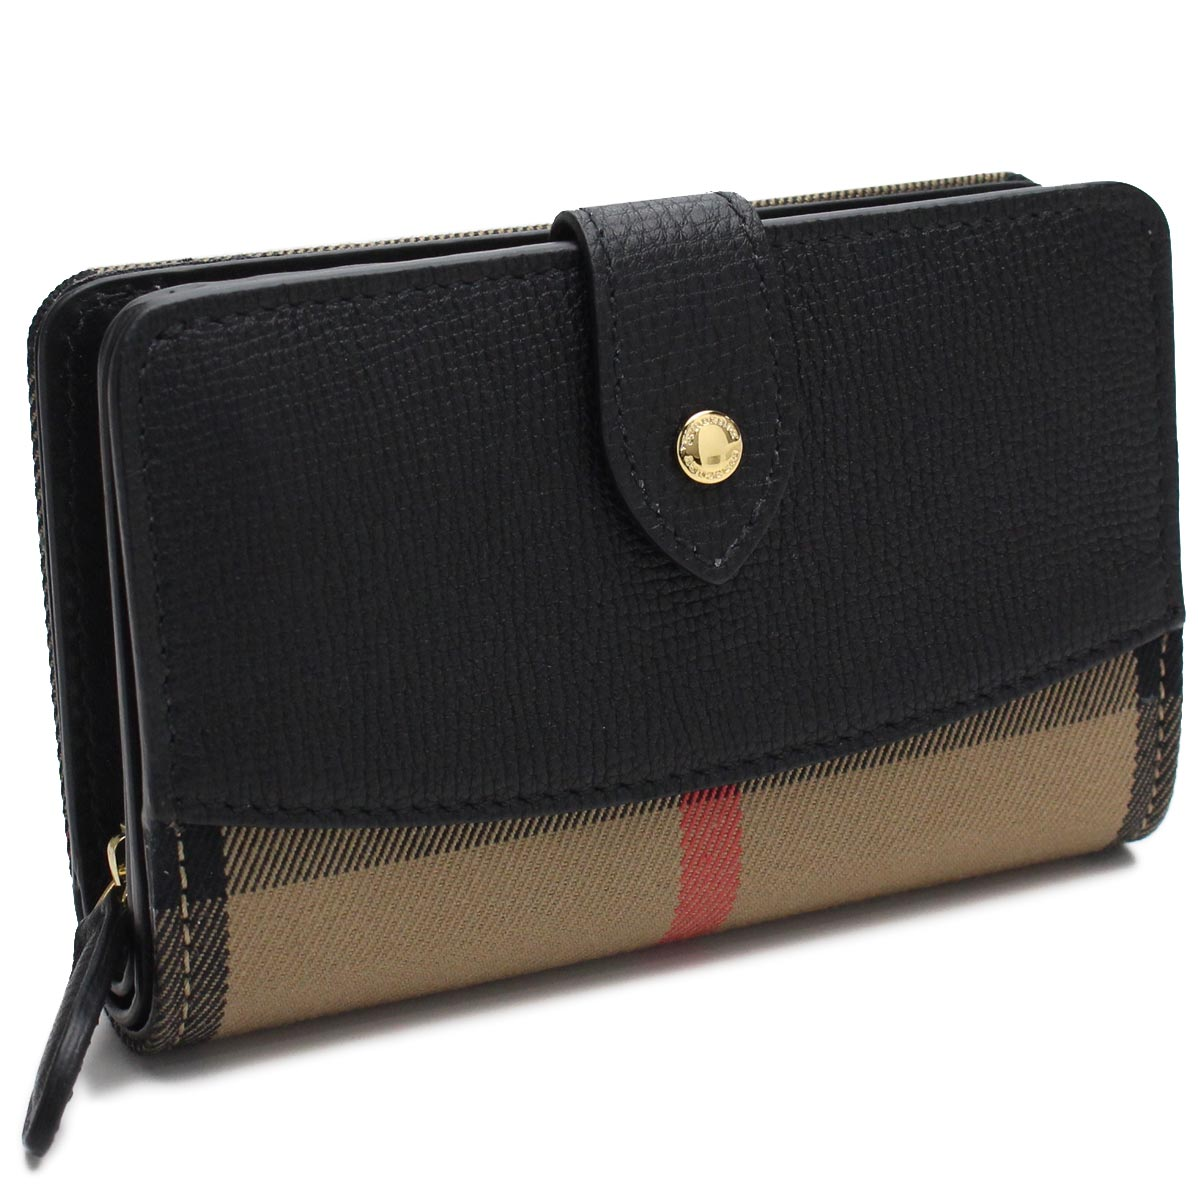 buy popular d7af0 d1f8d 4018881 BLACK black multicolored with the Burberry (BURBERRY) HAMPSTEAD two  fold wallet small change case